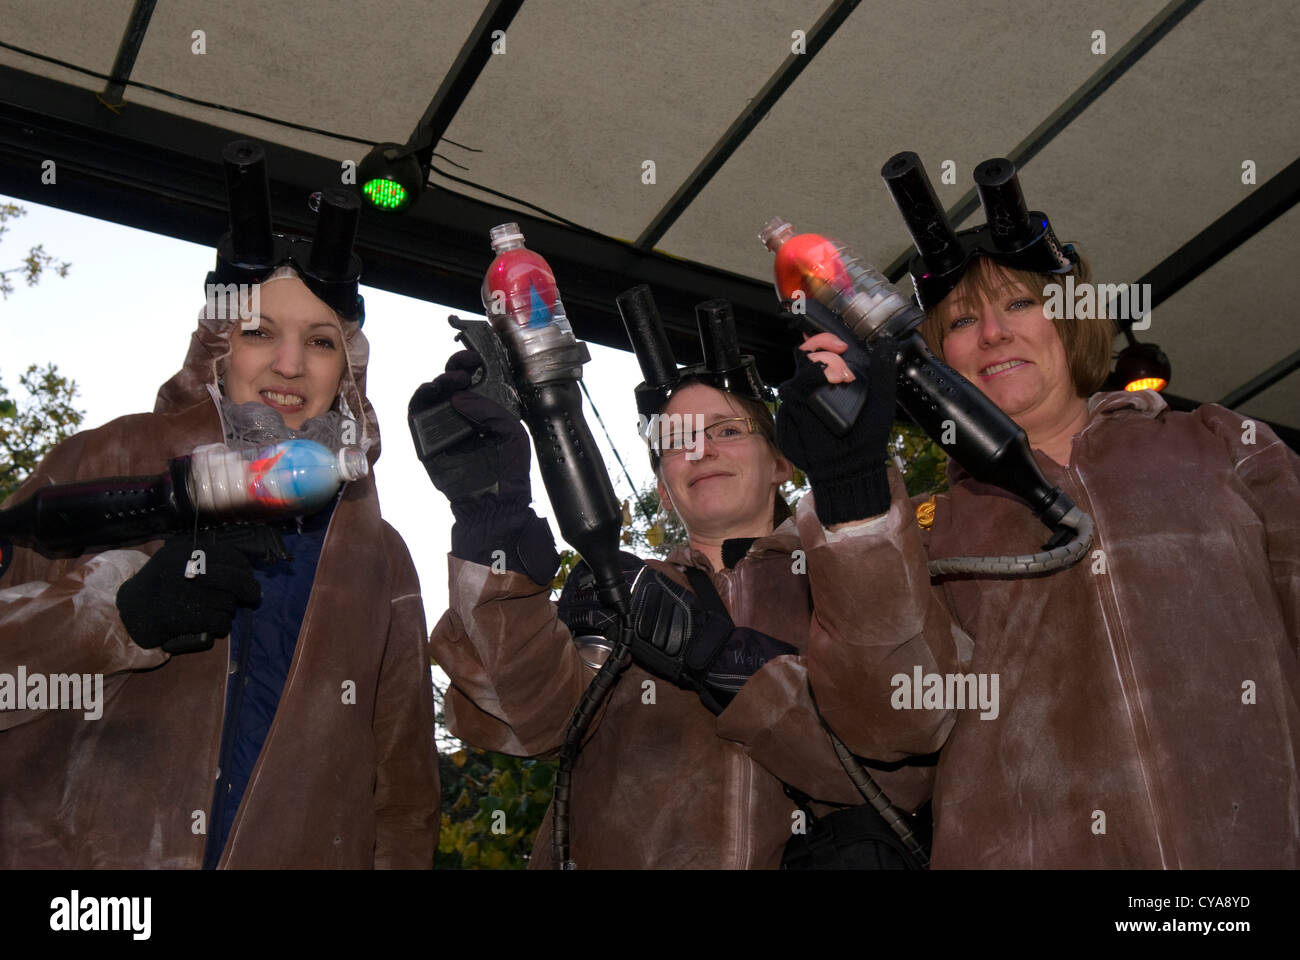 People dressed as Ghostbusters at Liphook Carnival, Liphook, Hampshire, UK. 27.10.2012. - Stock Image